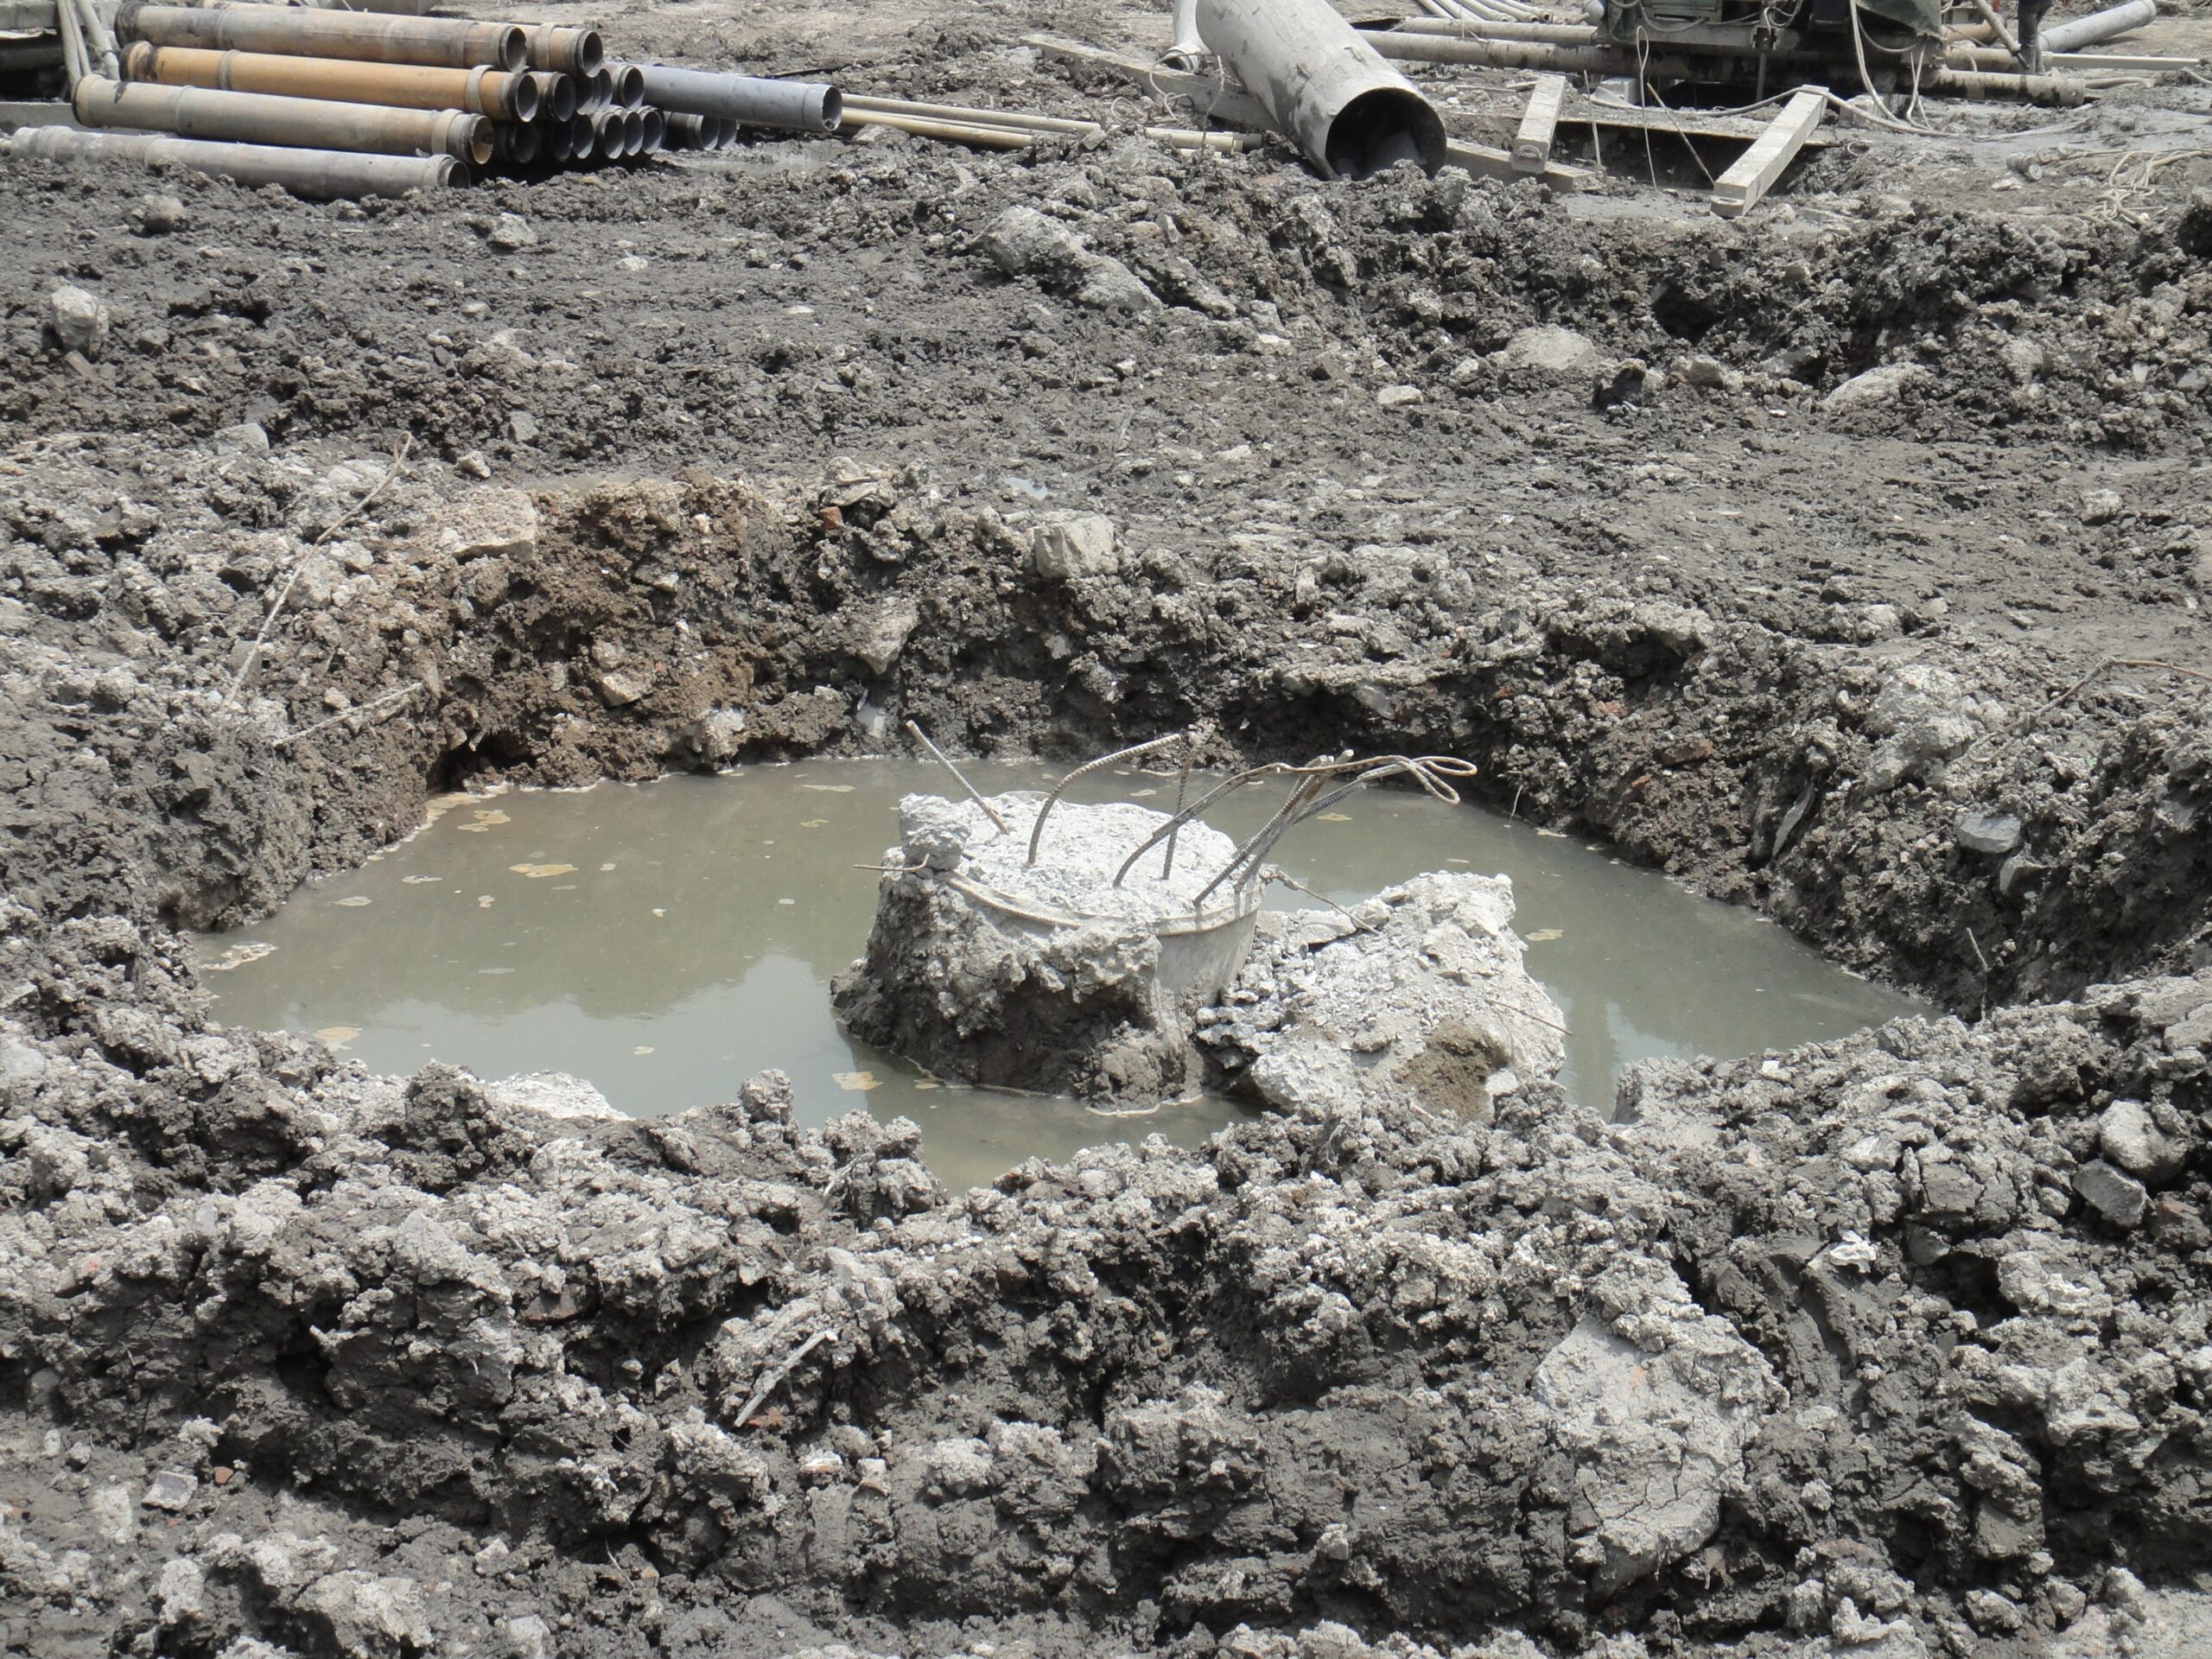 How to Deal with Hazardous Waste in the Soil